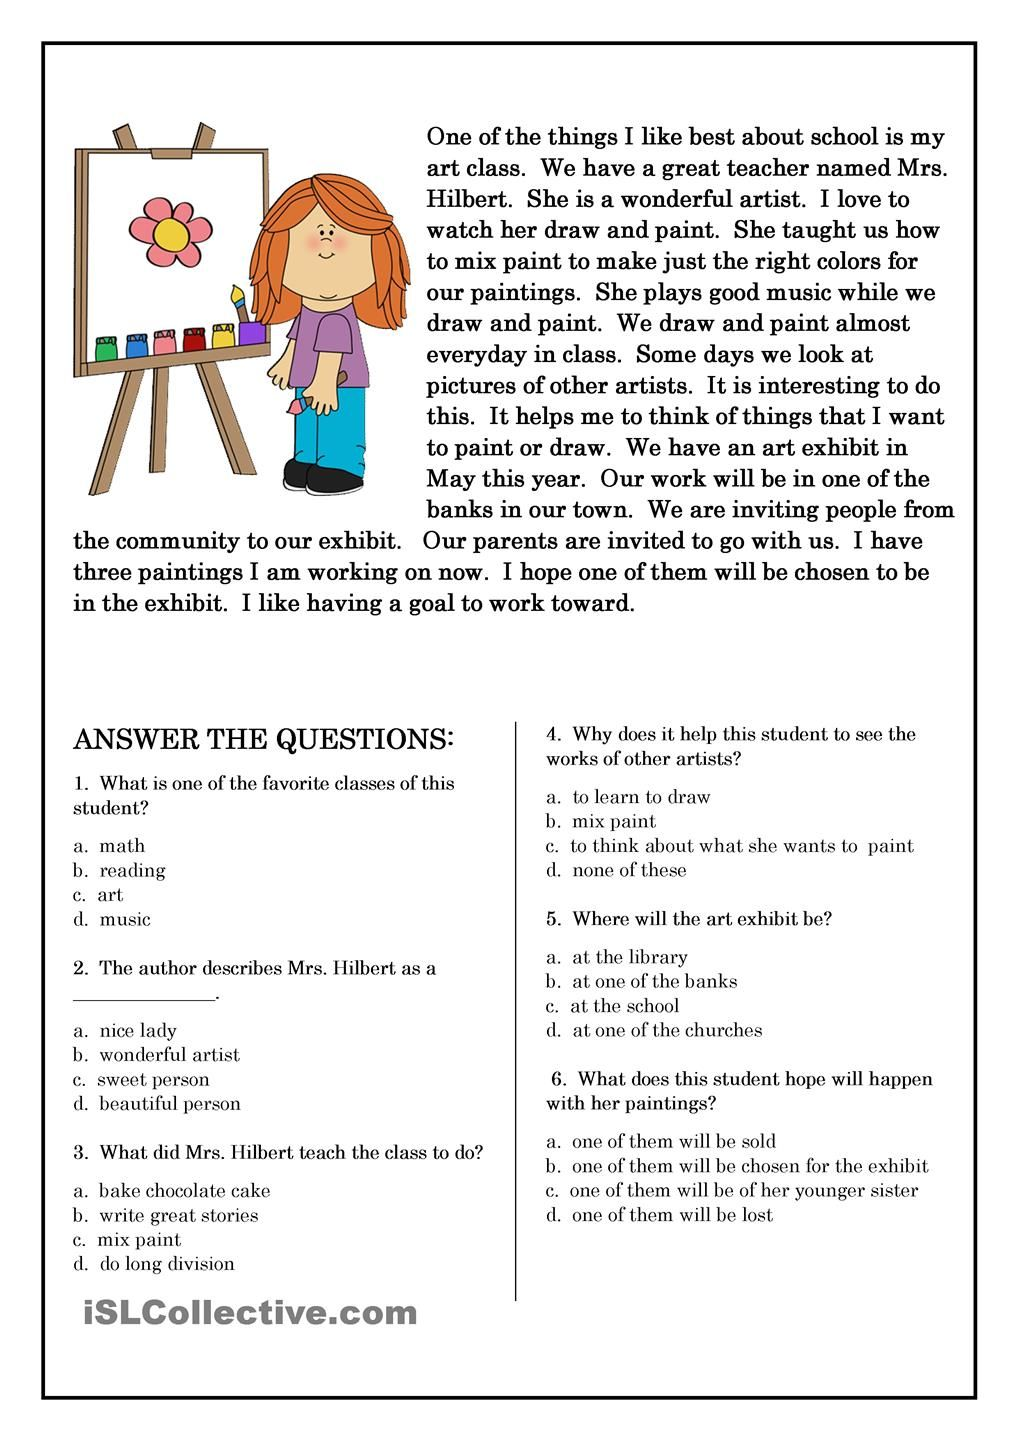 Worksheet Reading Comprehension Activities Year 3 1000 images about reading comprehension on pinterest and worksheets